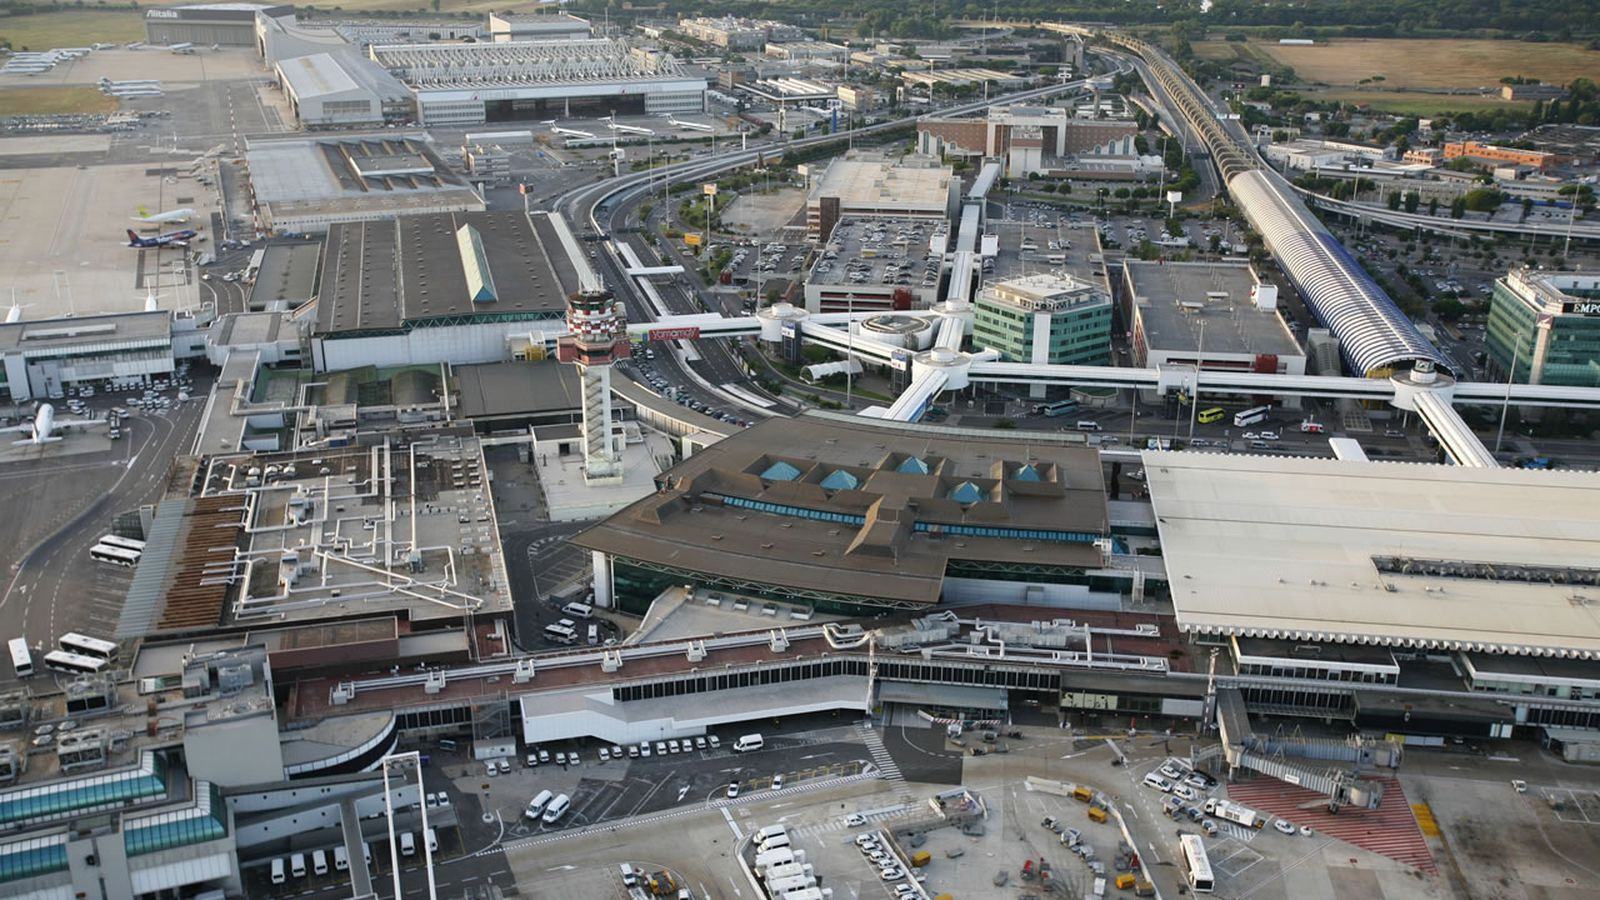 Where To Eat At Rome Fiumicino Airport Fco Eater